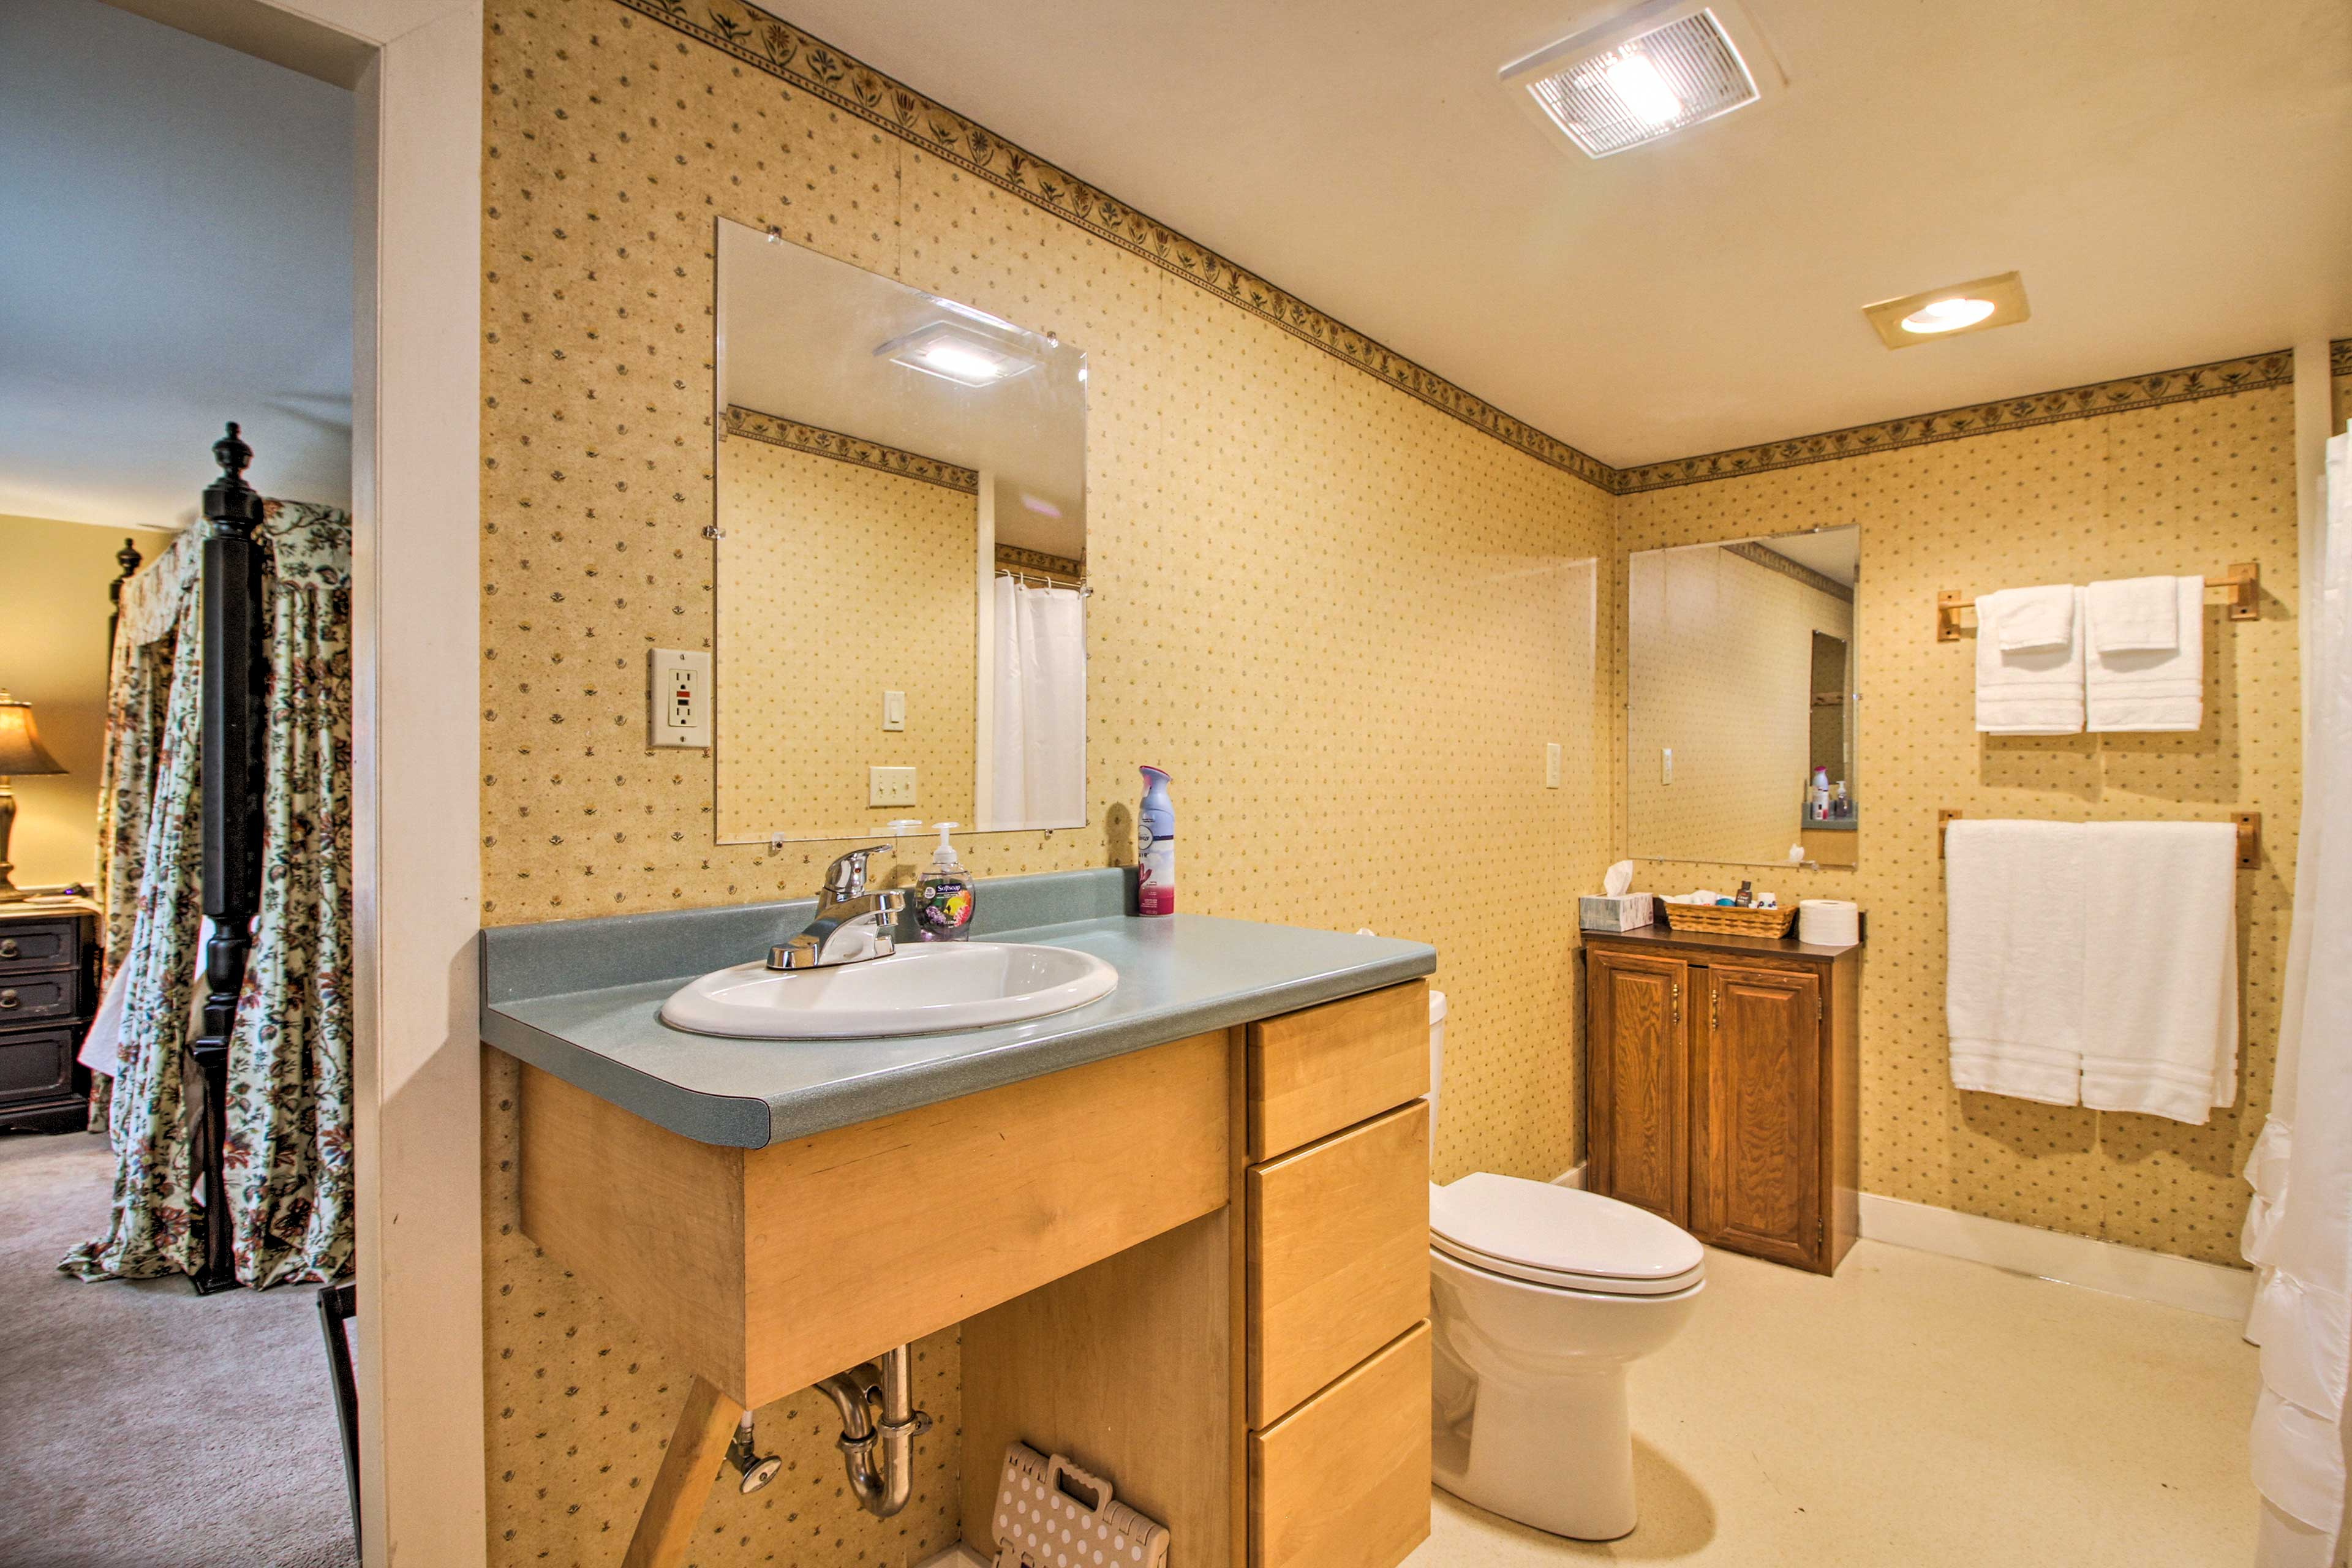 There is 1 full bathroom in the home.